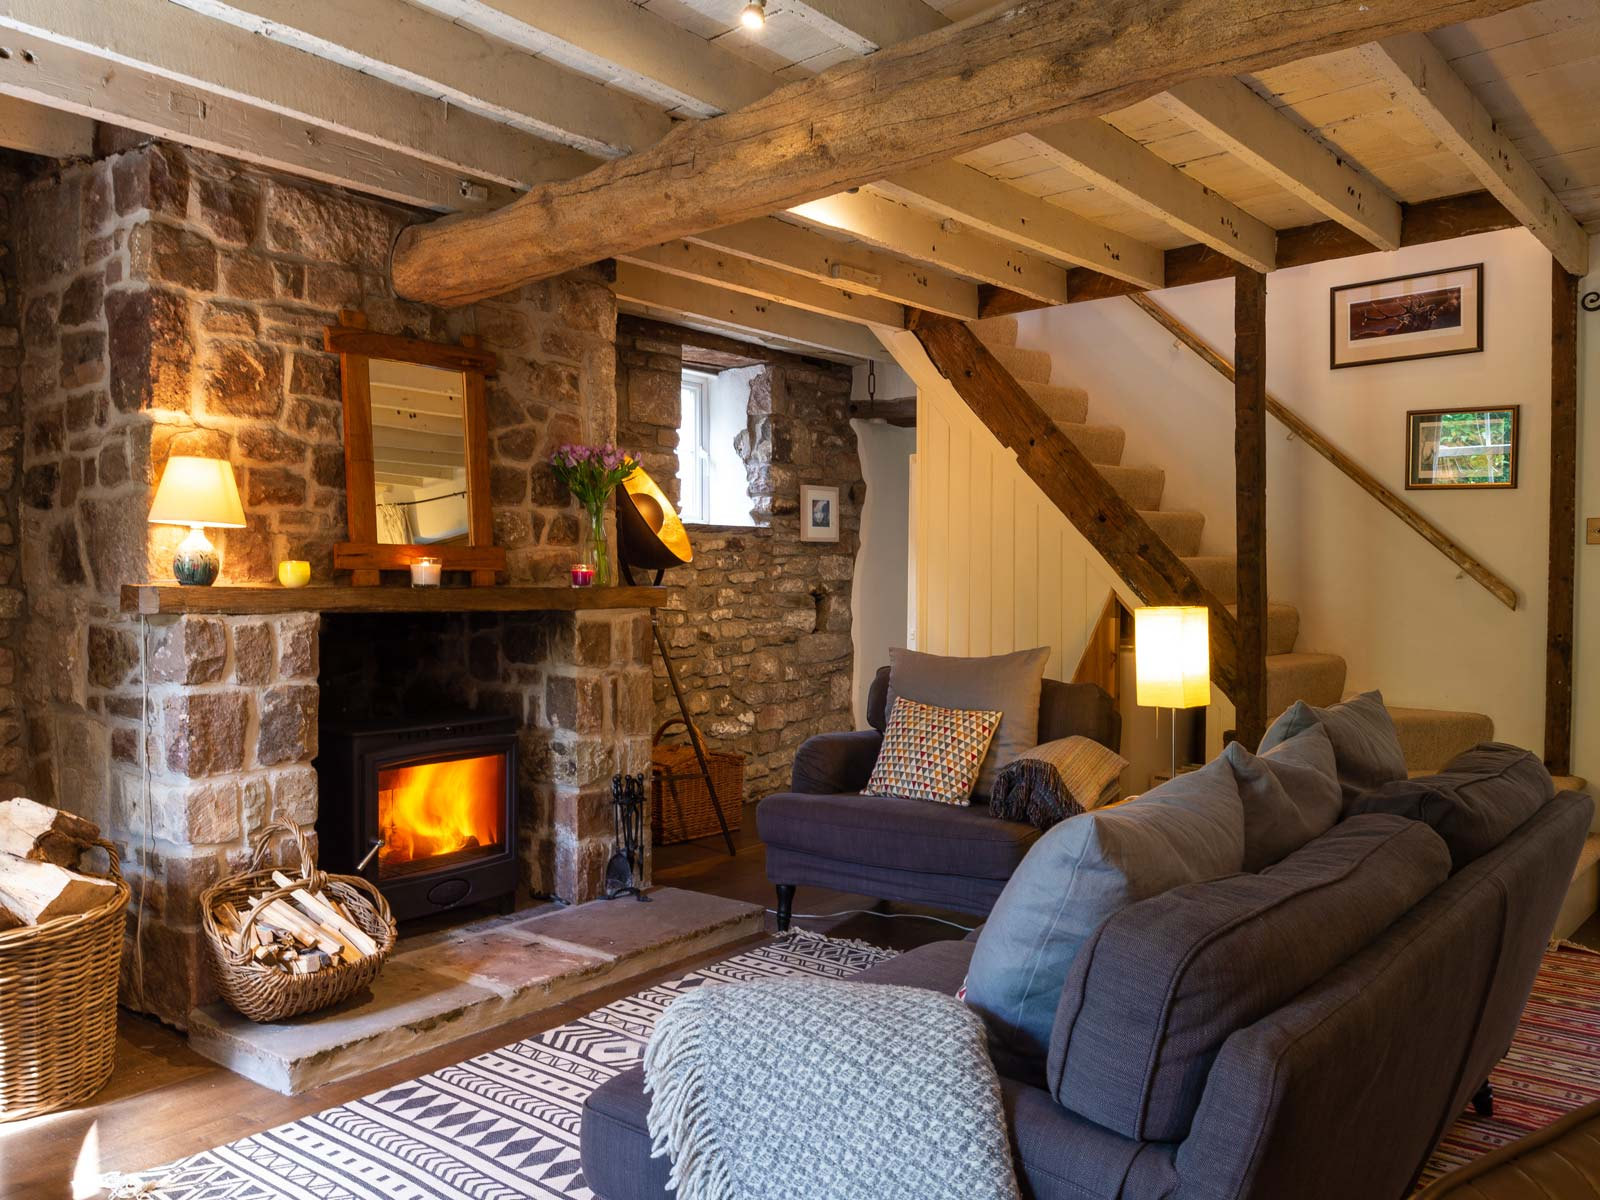 johnson cottage cosy romantic cottage for couples near riverside rh wyevalleyholidaycottages co uk romantic cottages for couples uk romantic cottages for couples ontario